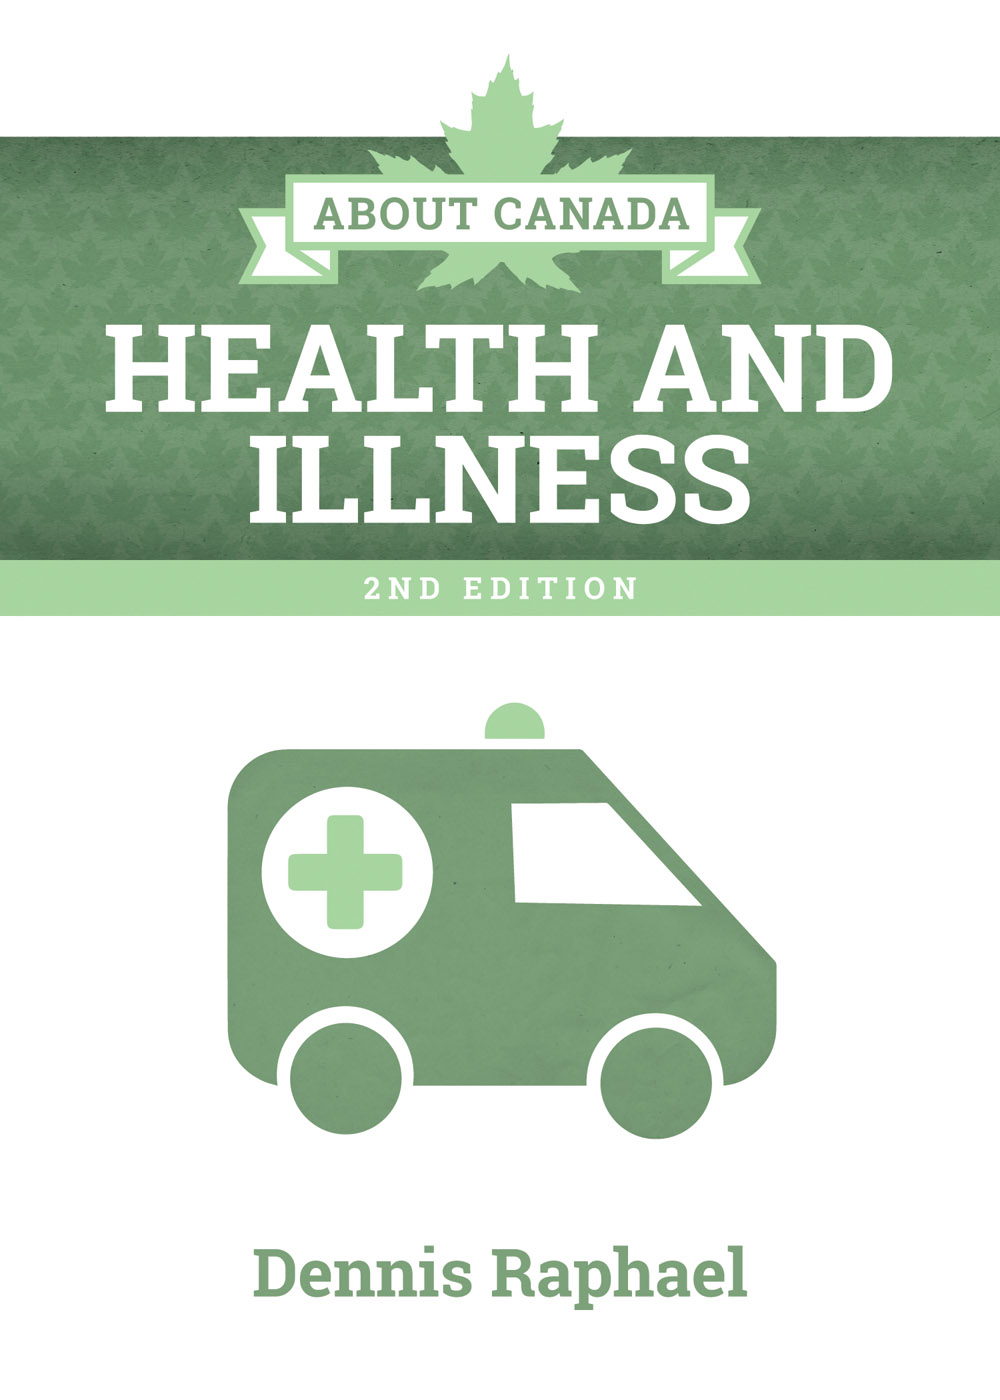 About Canada: Health and Illness